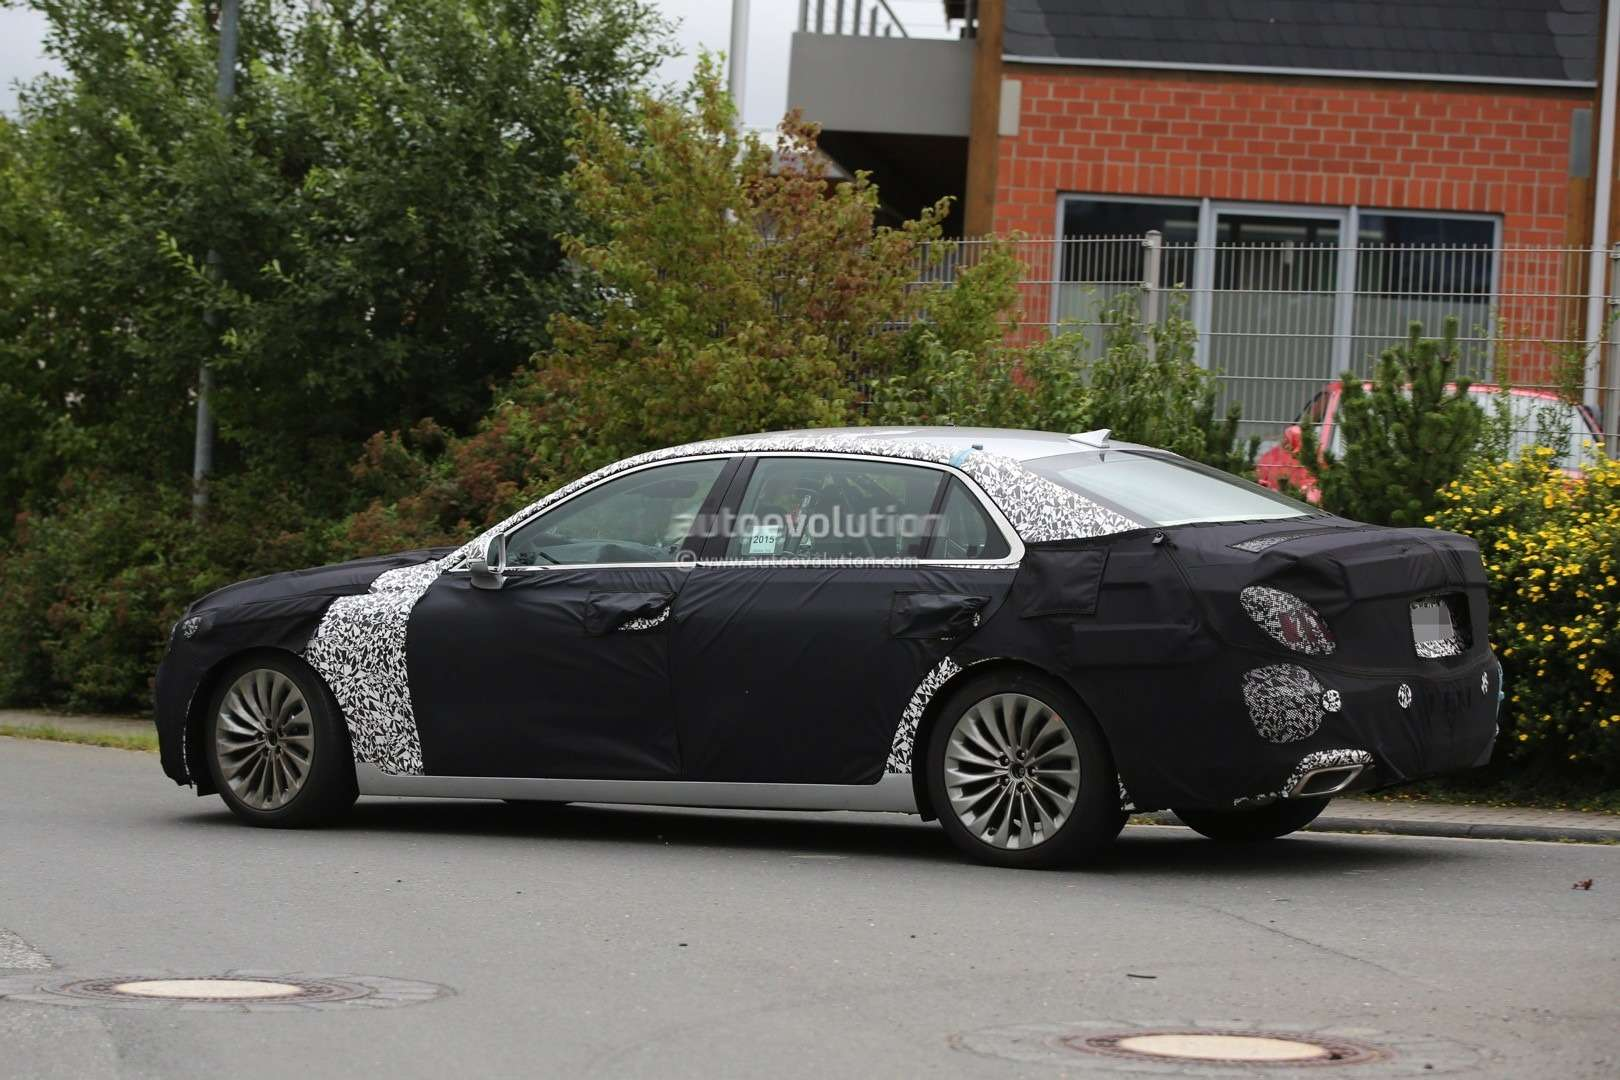 2017-hyundai-equus-spied-out-testing-in-germany-photo-gallery_12